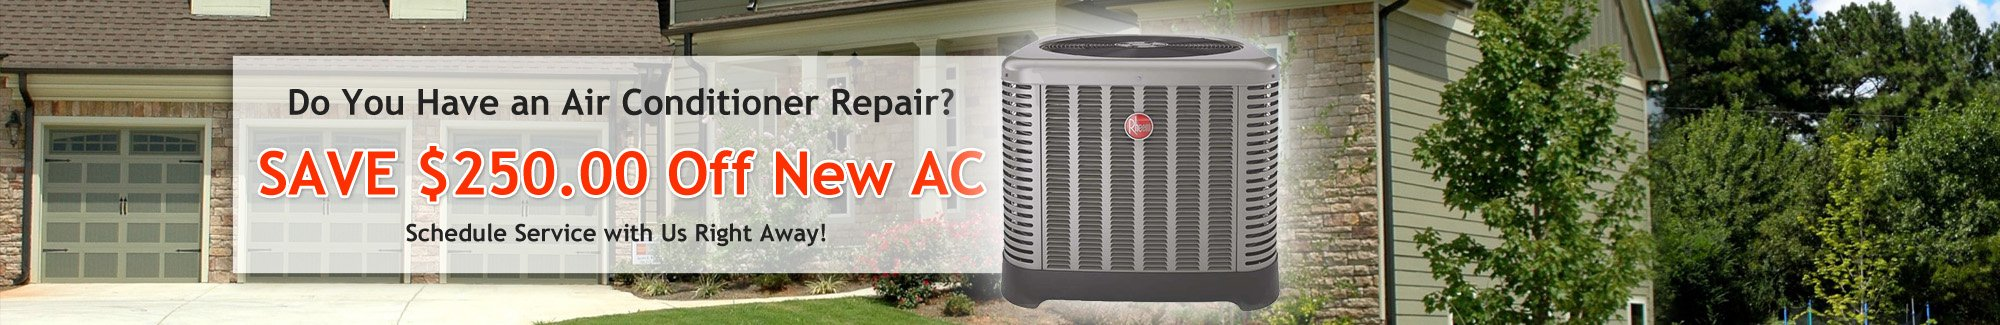 Schedule your AC installation in Rockwall TX with Appliance and Air Care Experts!